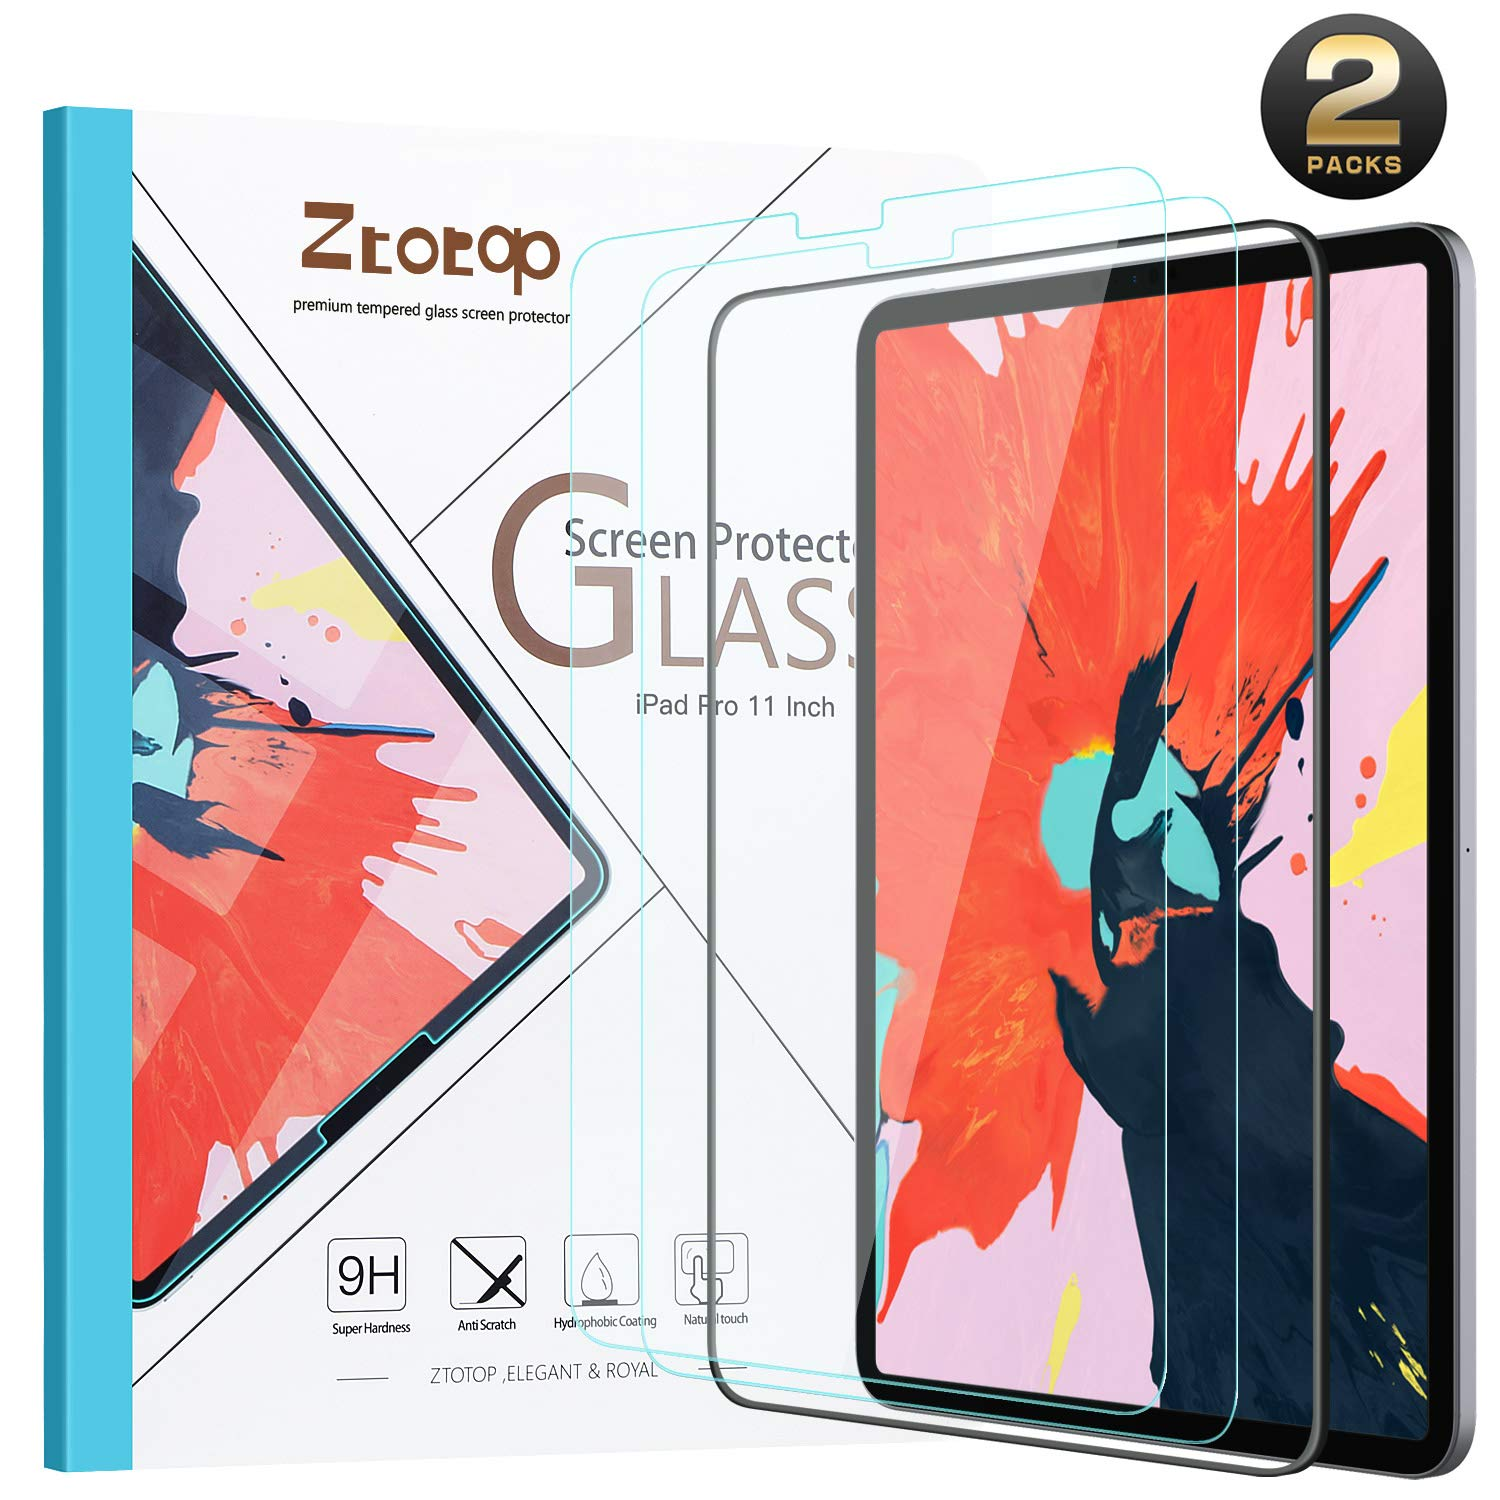 Ztotop Screen Protector for iPad Pro 11-inch 2018 (2 Pack), High Definition/Scratch Resistant/Face ID and Apple Pencil Compatible 9H Tempered Glass Screen Protector for iPad Pro 11 Inch 2018